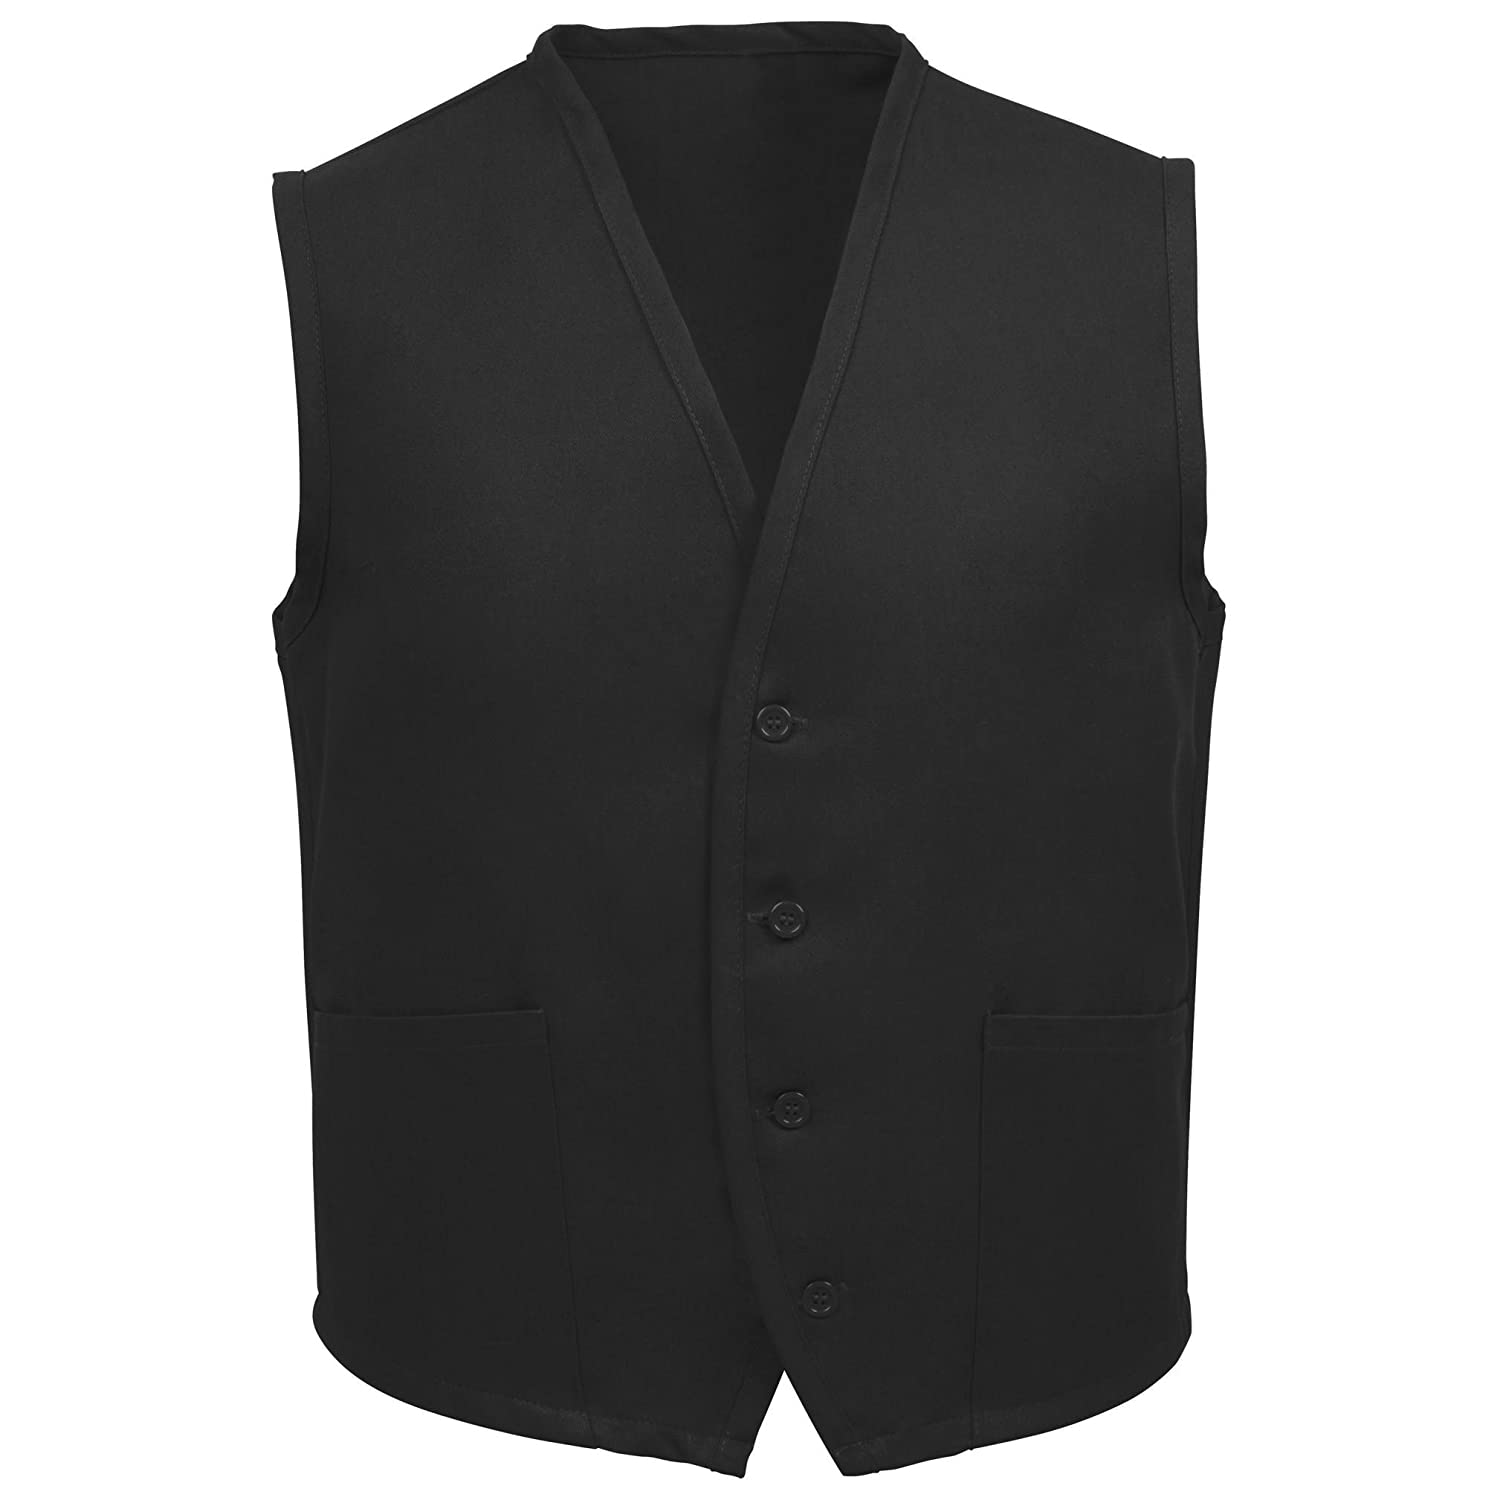 1910s Men's Working Class Clothing FAME Adults 2 Pocket Vest $31.87 AT vintagedancer.com